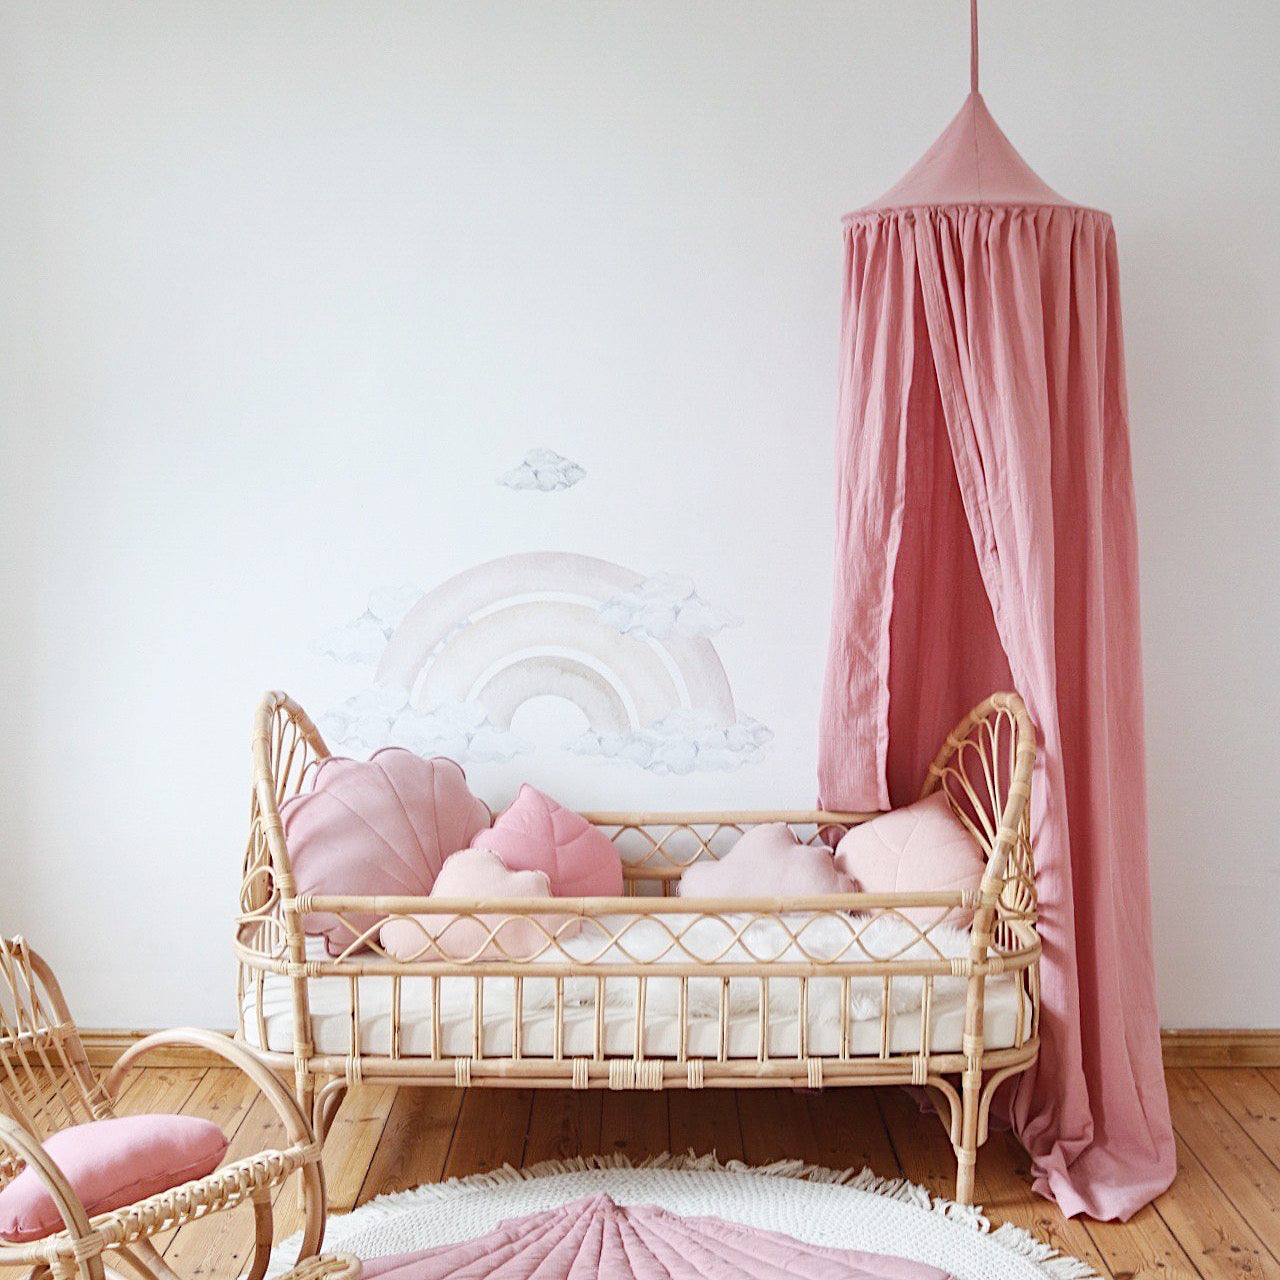 Soft Pink Indoor Canopy - The Quirky Home Co